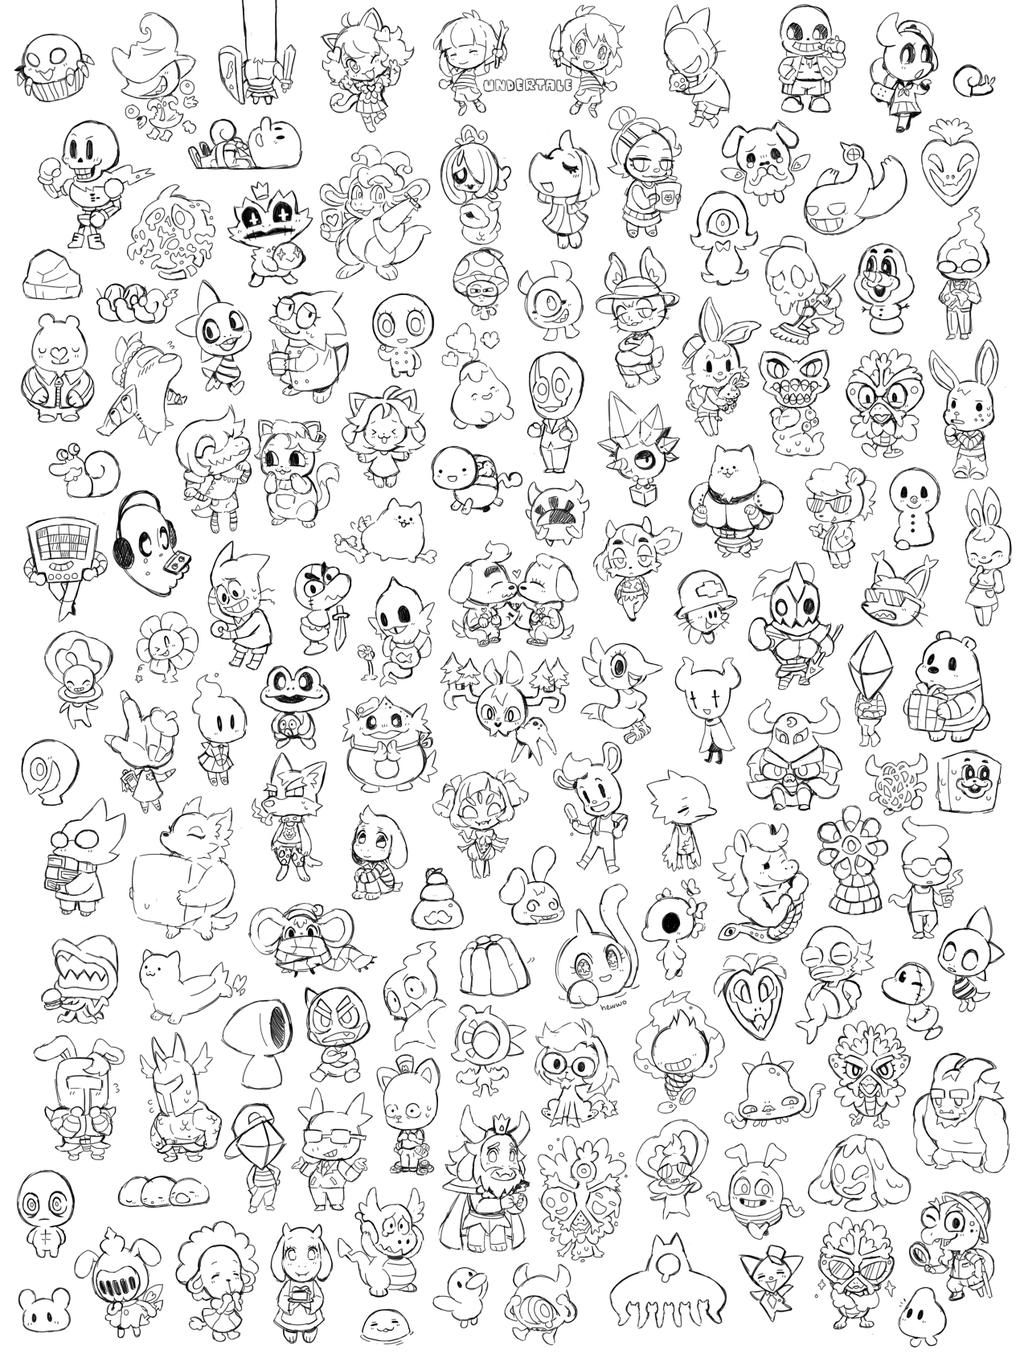 This is seriously amazing! | Undertale | Pinterest